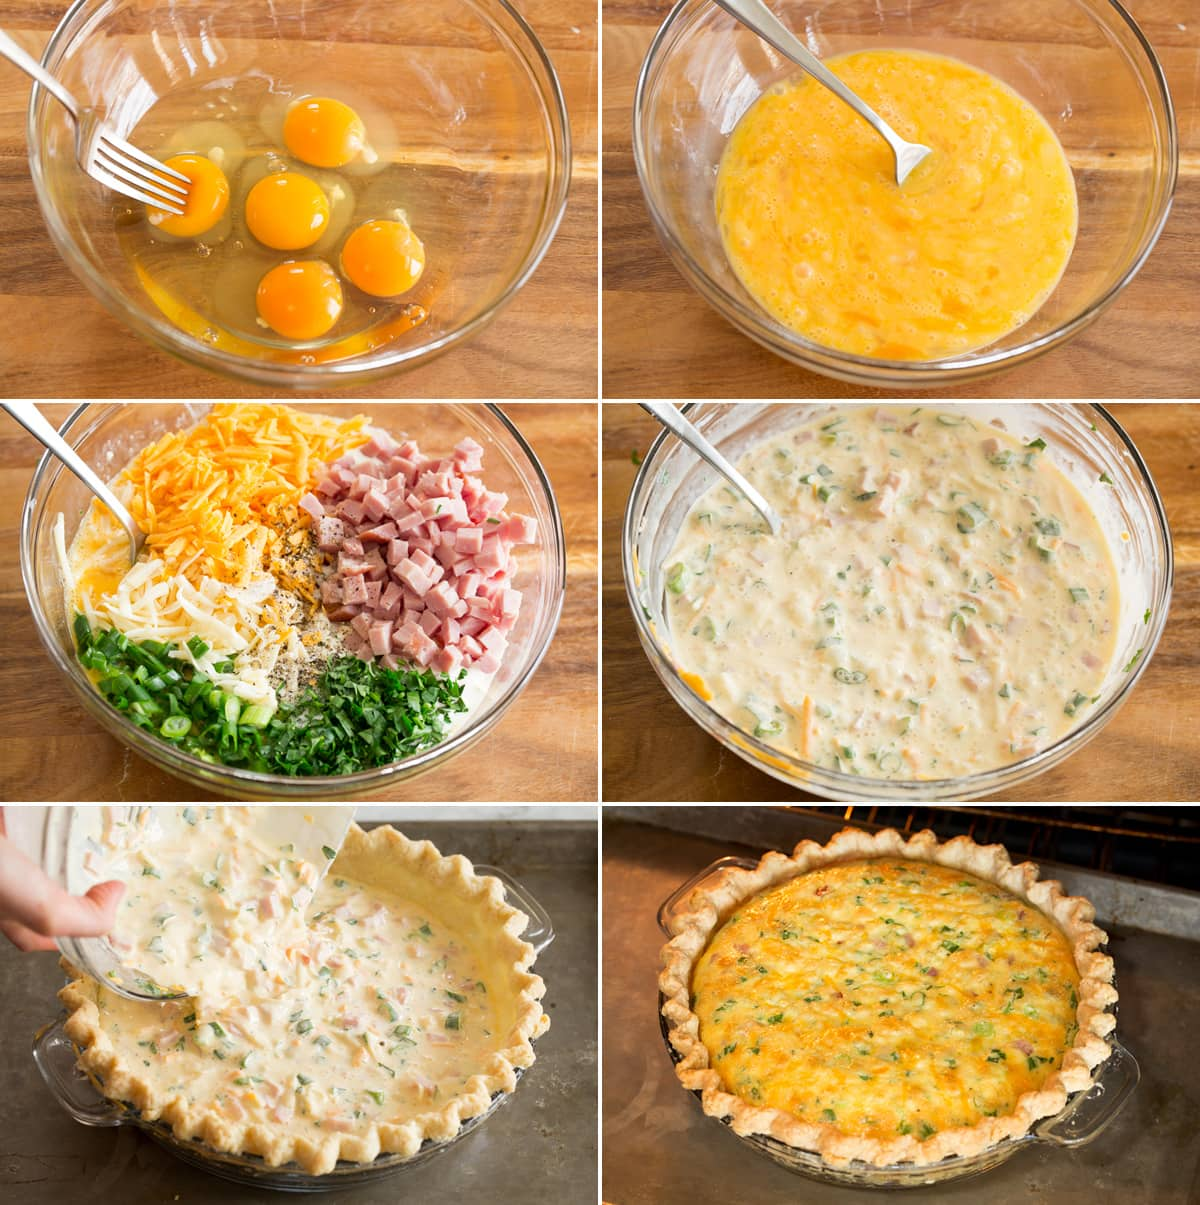 Collage of six photos showing how to make quiche filling and bake in crust.